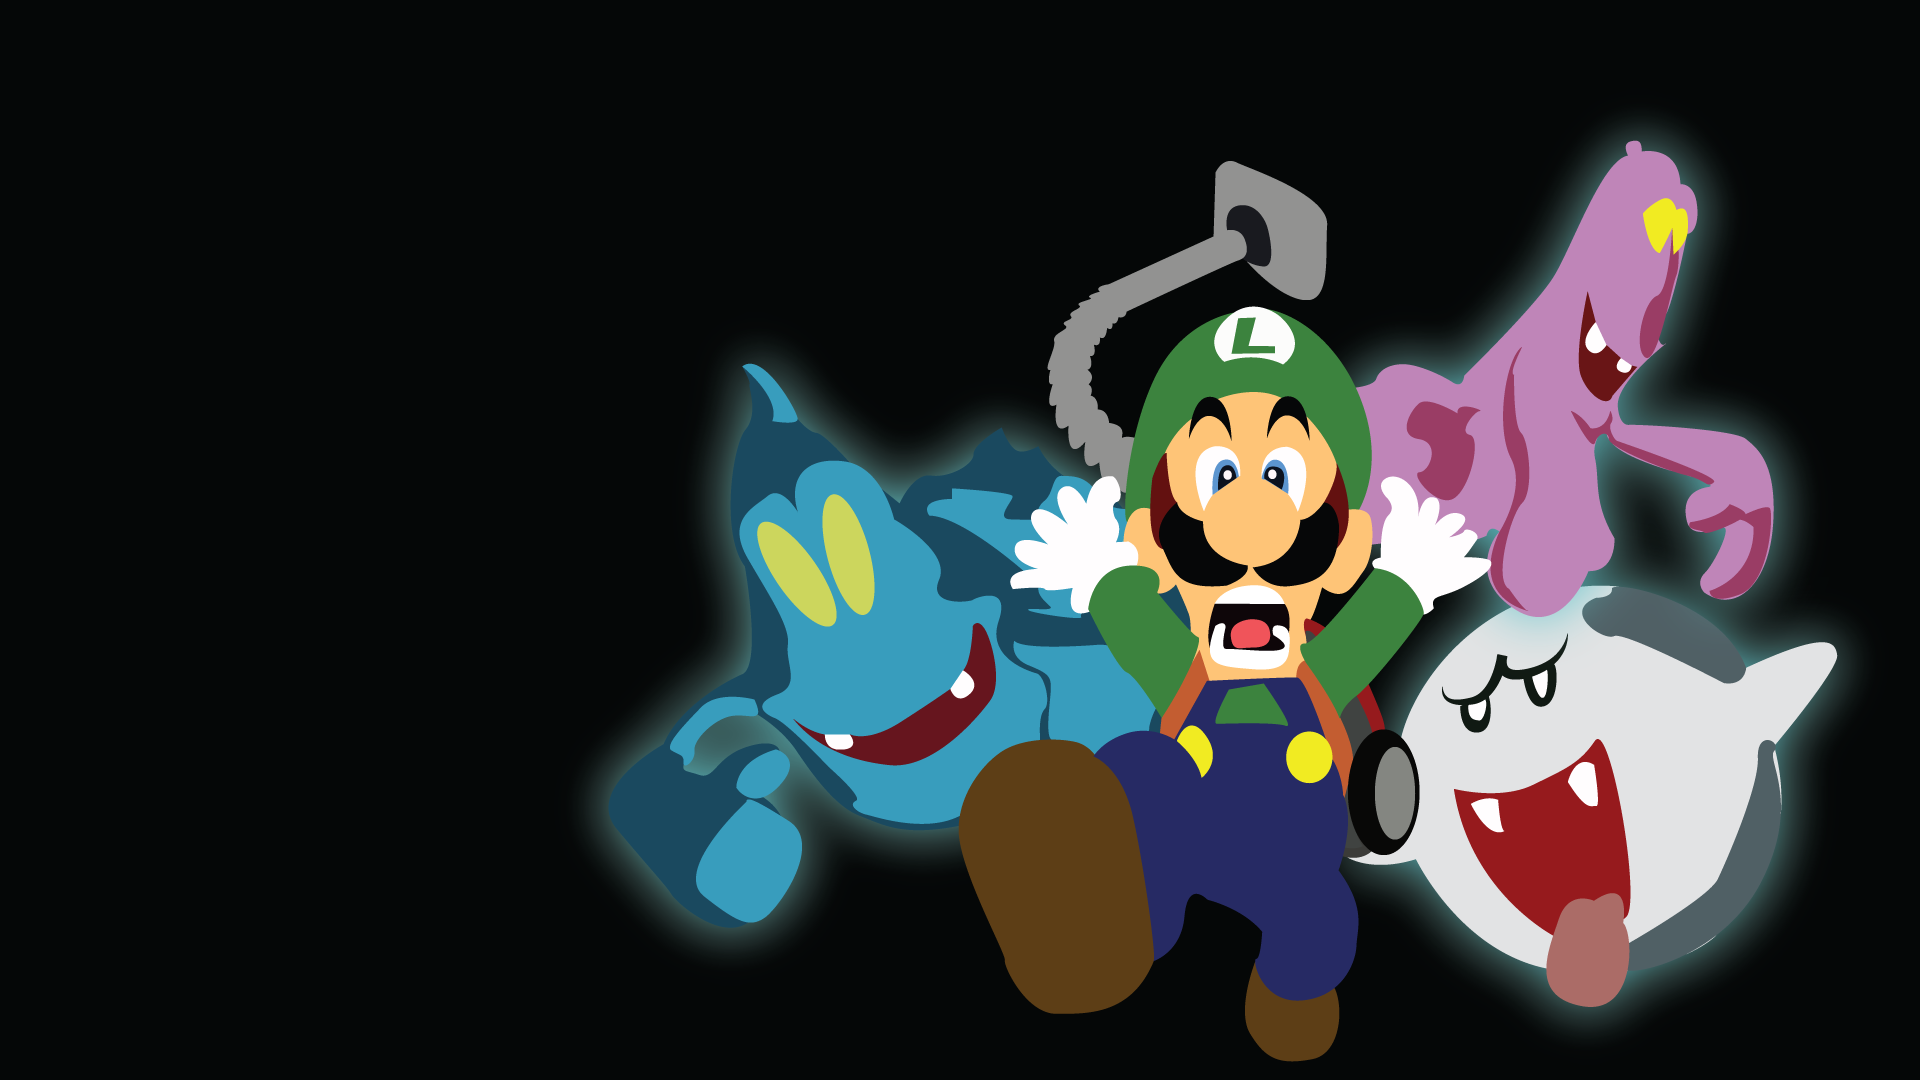 luigi s mansion ipad wallpaper